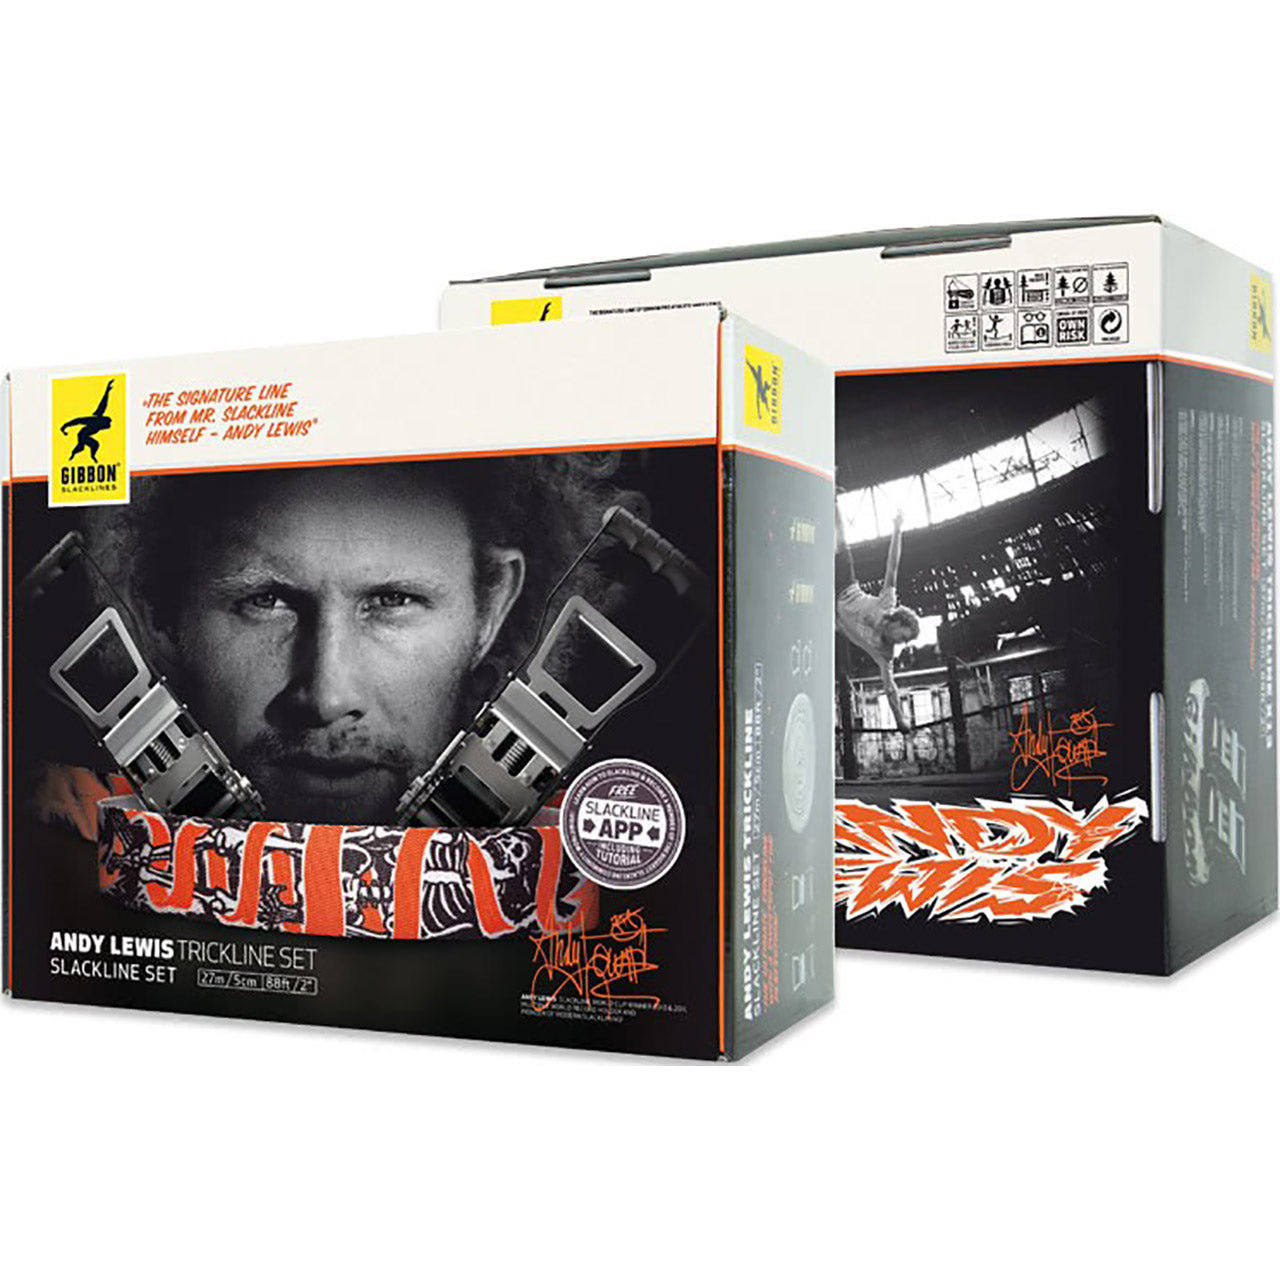 Gibbon Andy Lewis Trickline Signature Slackline Set Box